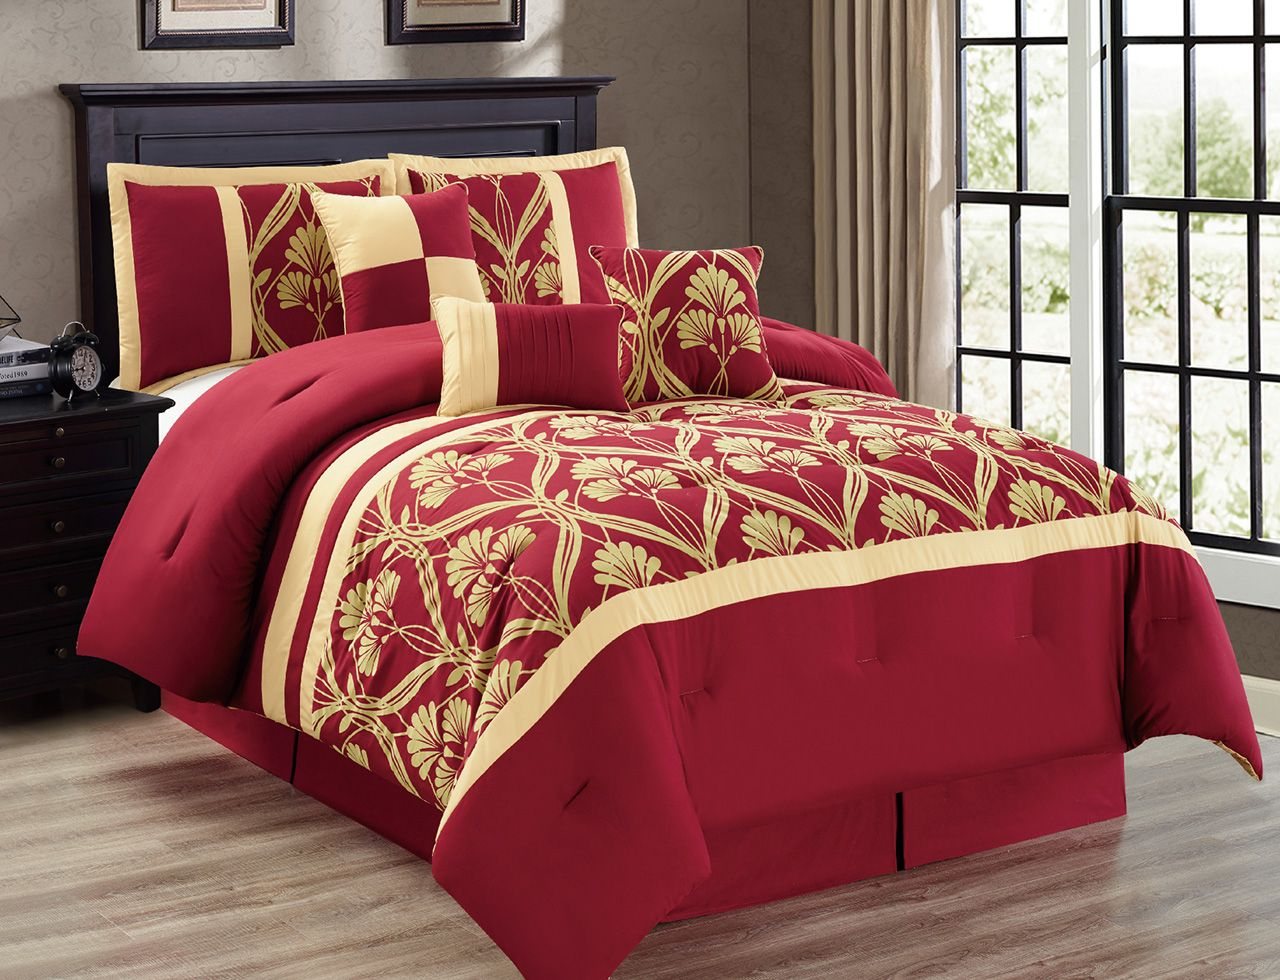 sets of and palm king tropical twin purple pleated size bedding paisley bedspreads teal set white black ballerina coastal comforters comforter gold queen tree full